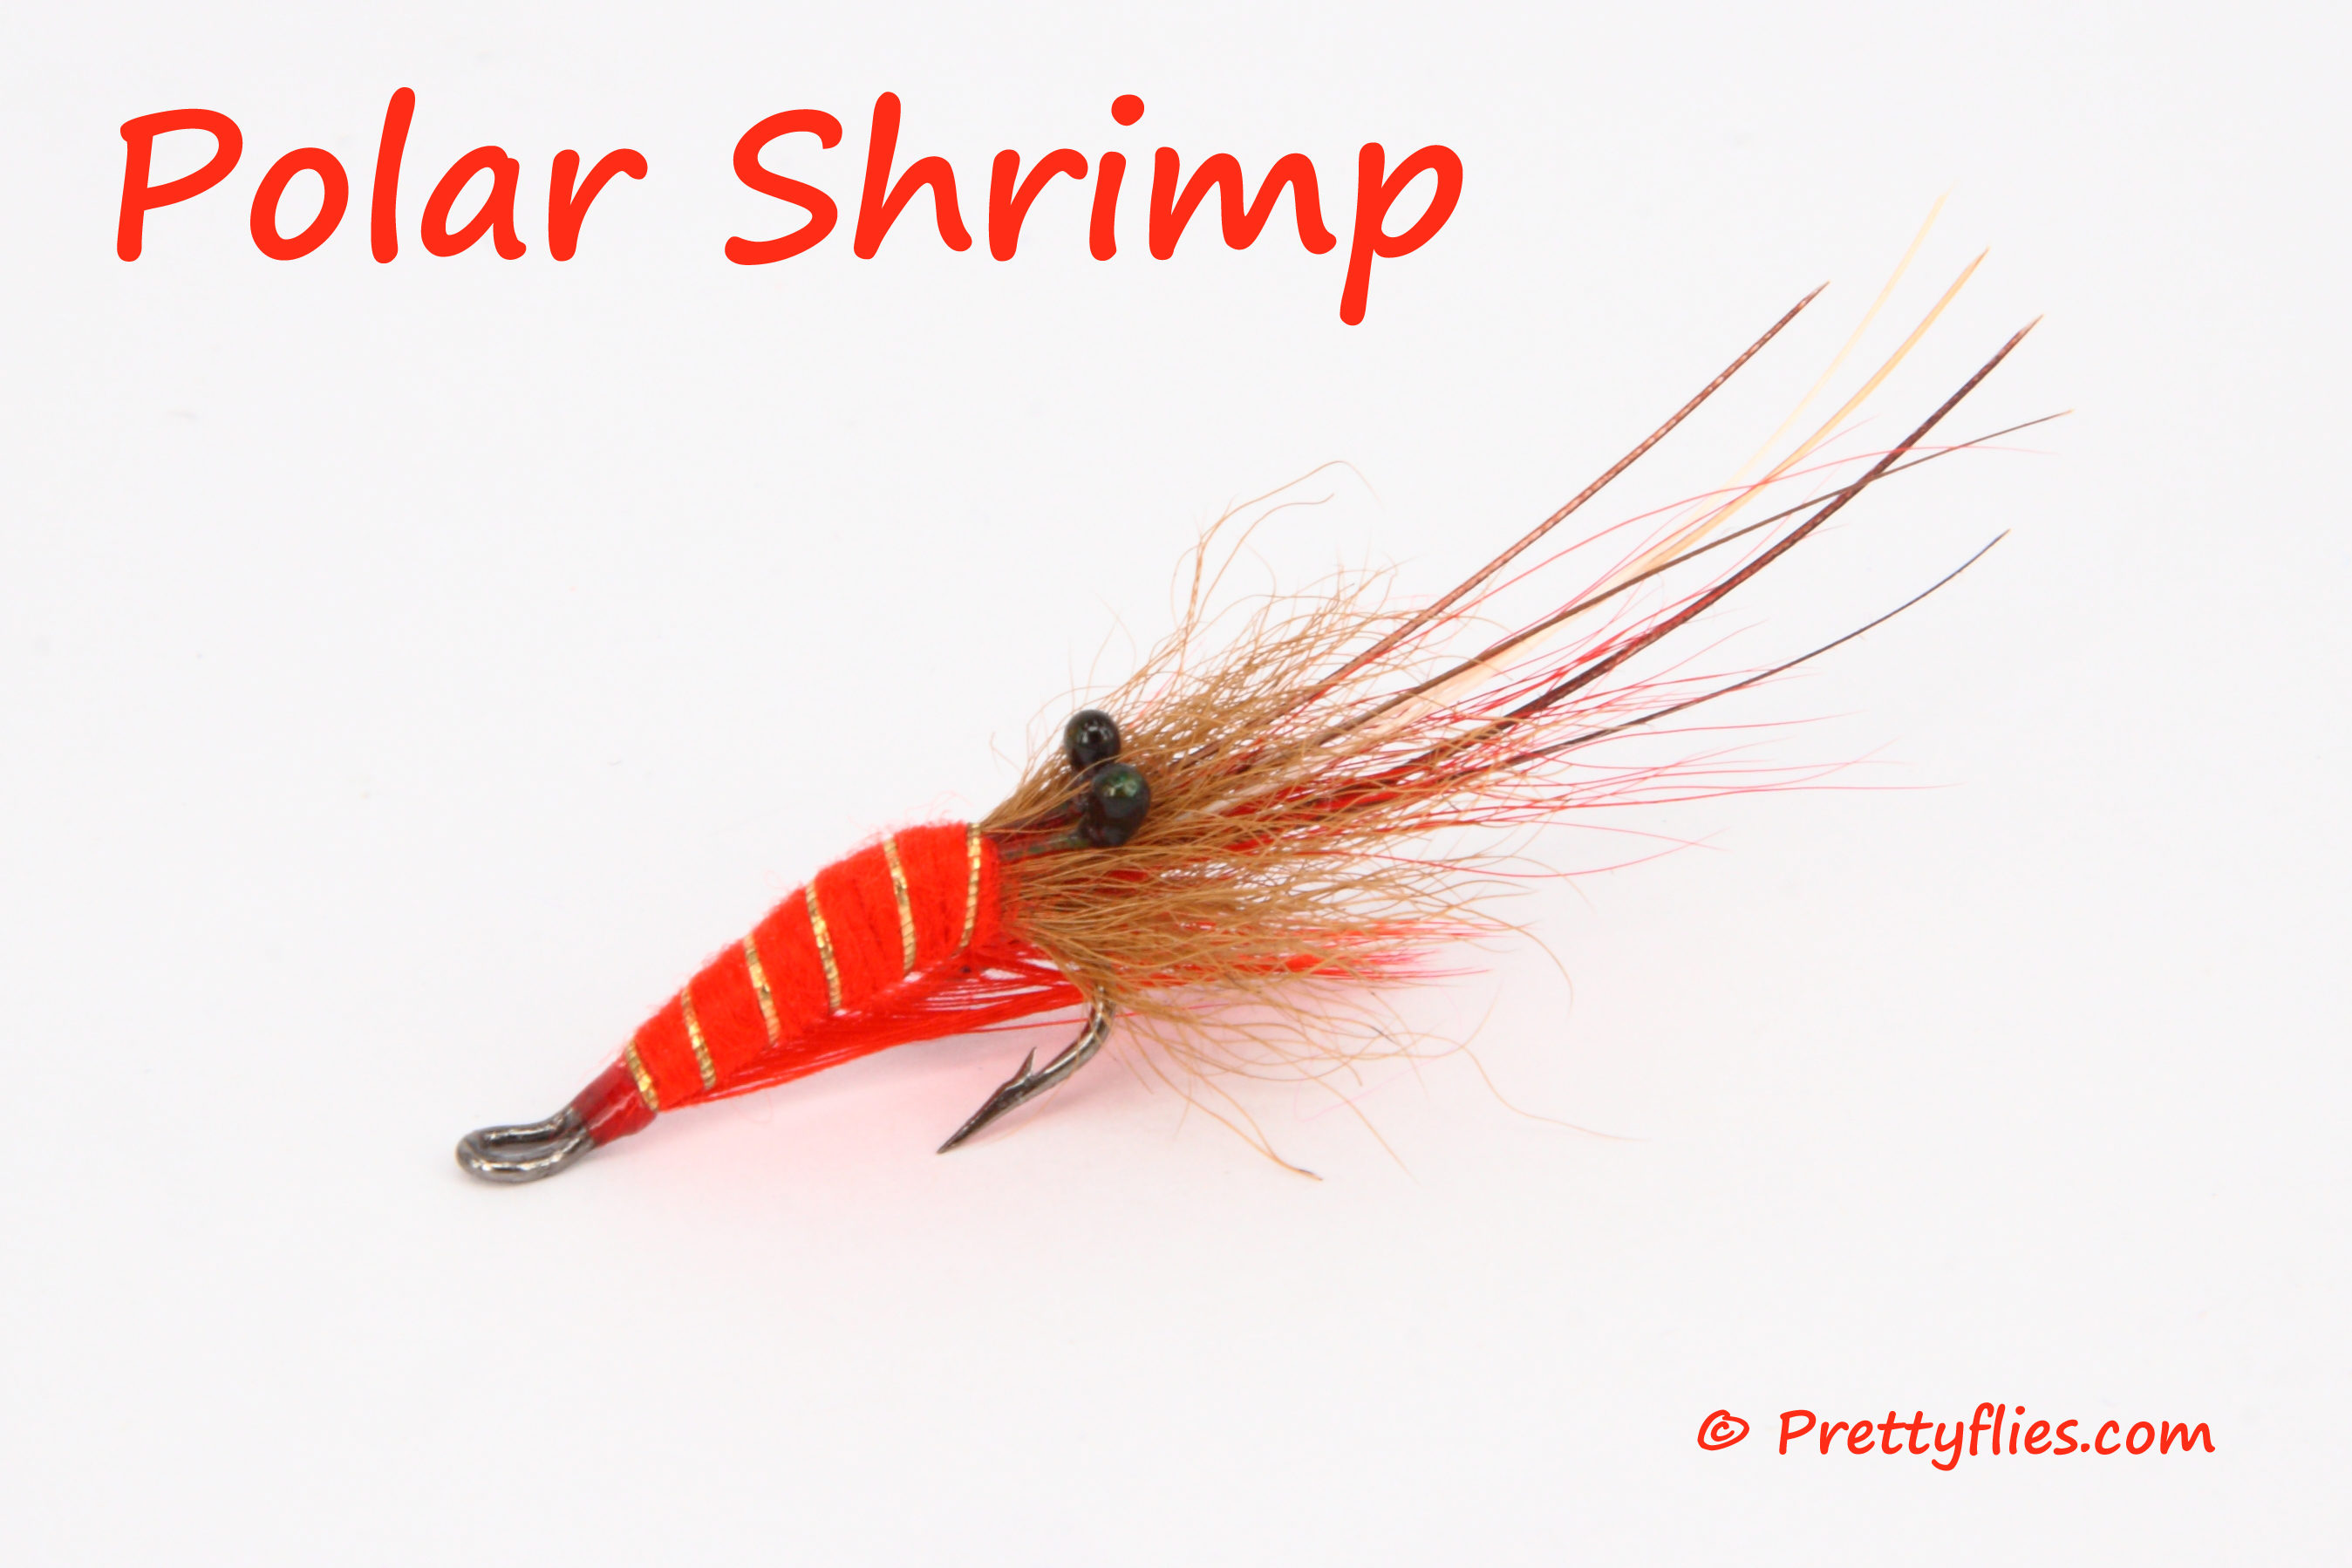 Polar Shrimp copy.jpg